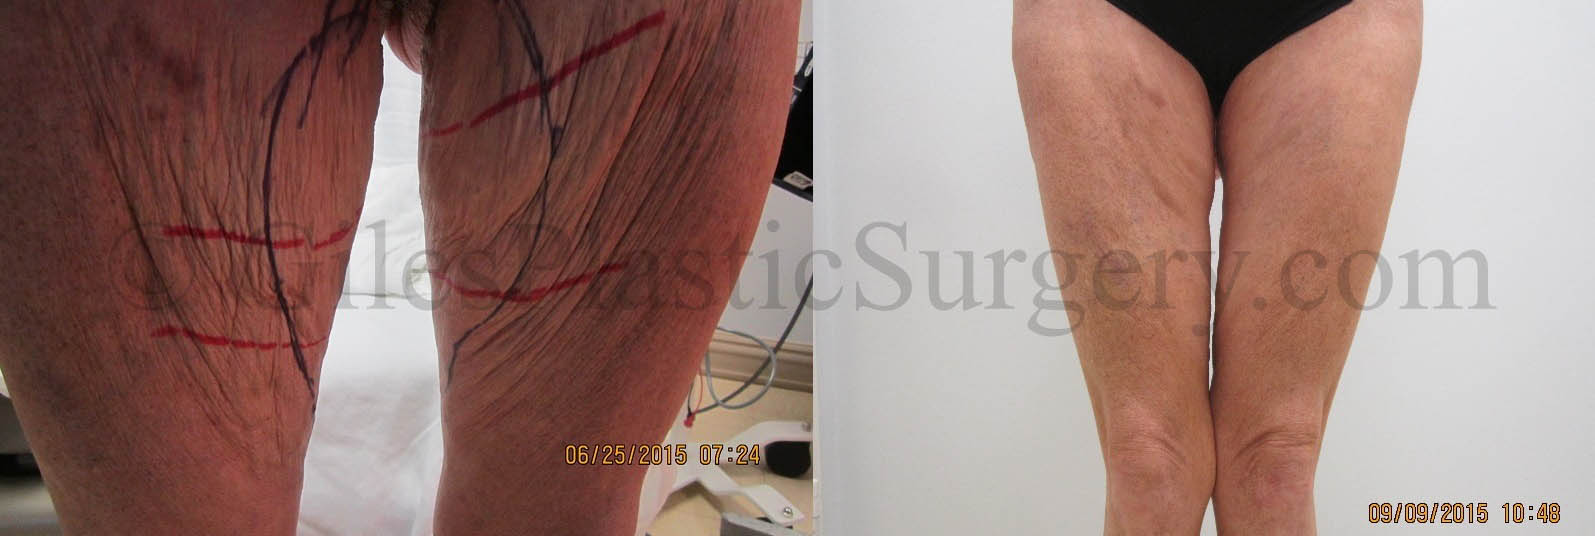 Before and after photos of thigh lift plastic surgery by Giles Breast and Body Plastic Surgery